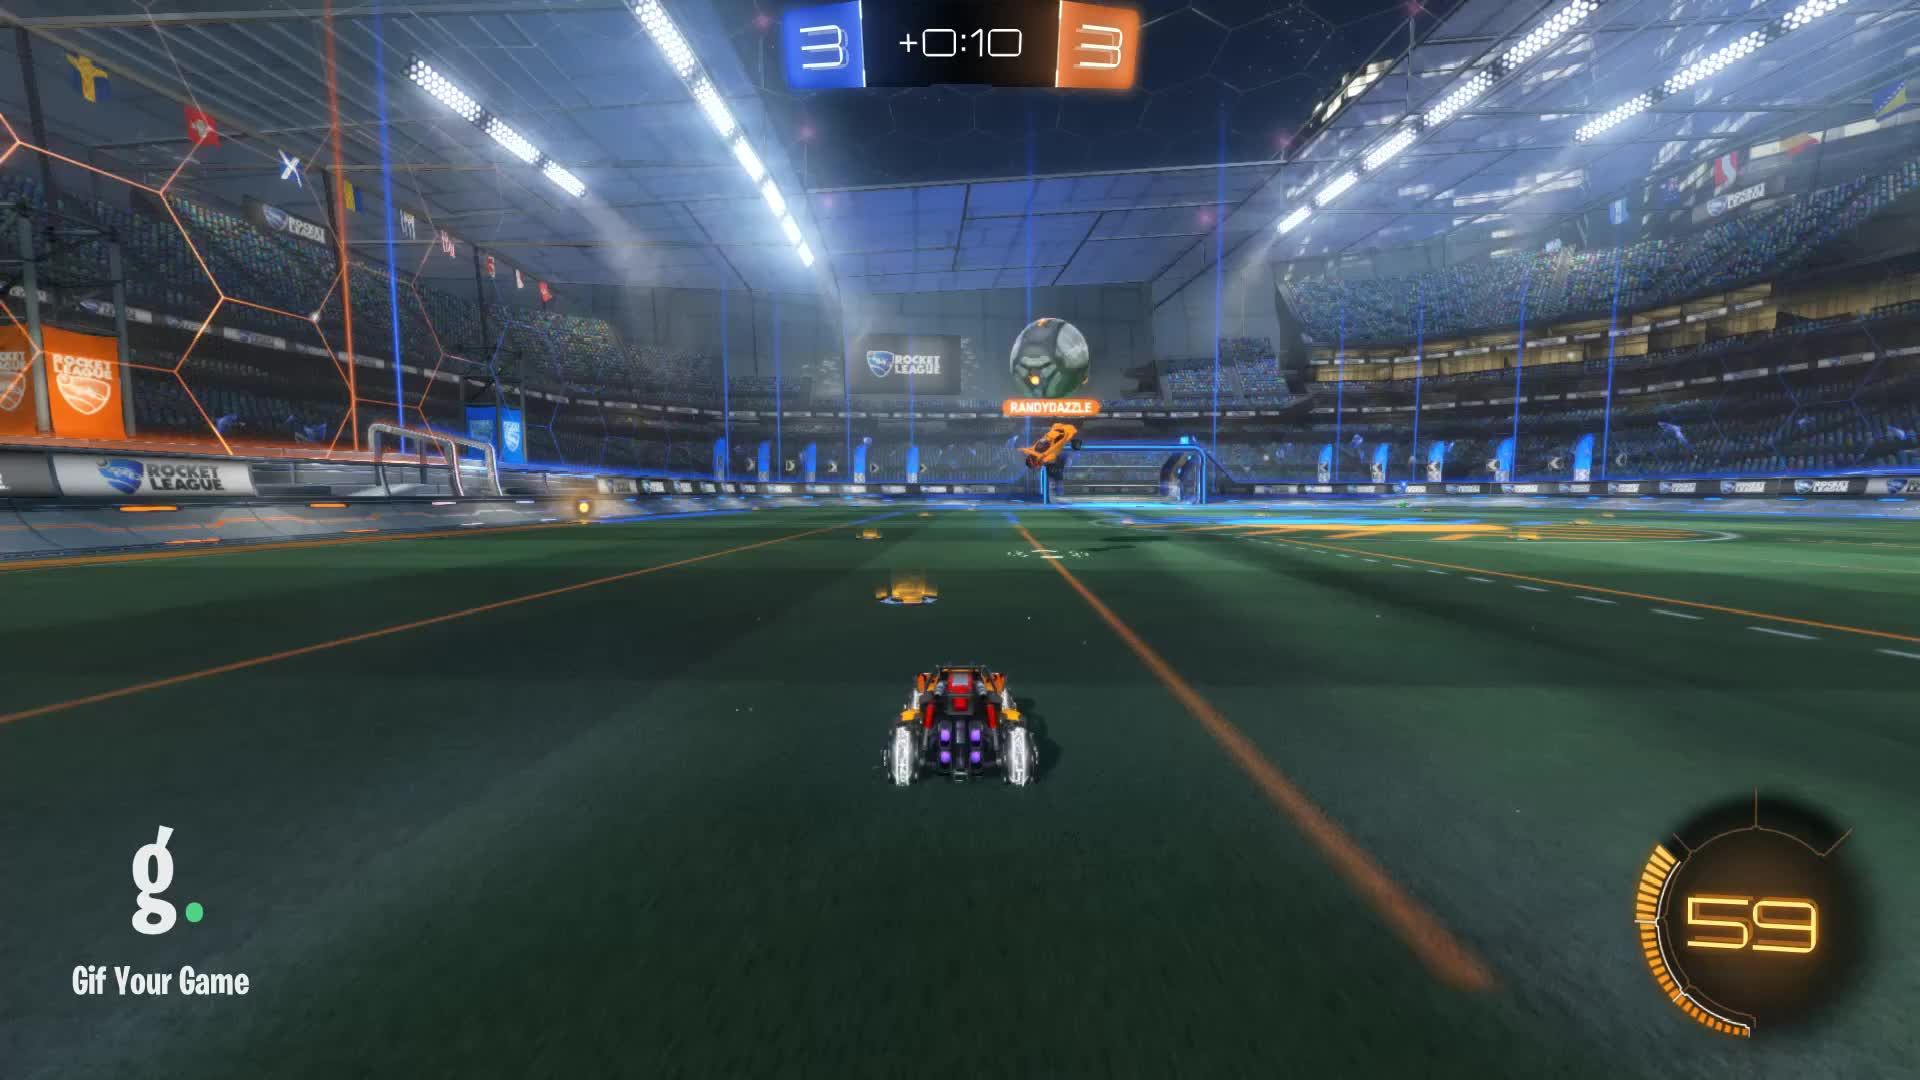 Gif Your Game, GifYourGame, Goal, Le Sloth (⊙ω⊙), Rocket League, RocketLeague, Goal 7: Le Sloth (⊙ω⊙) GIFs